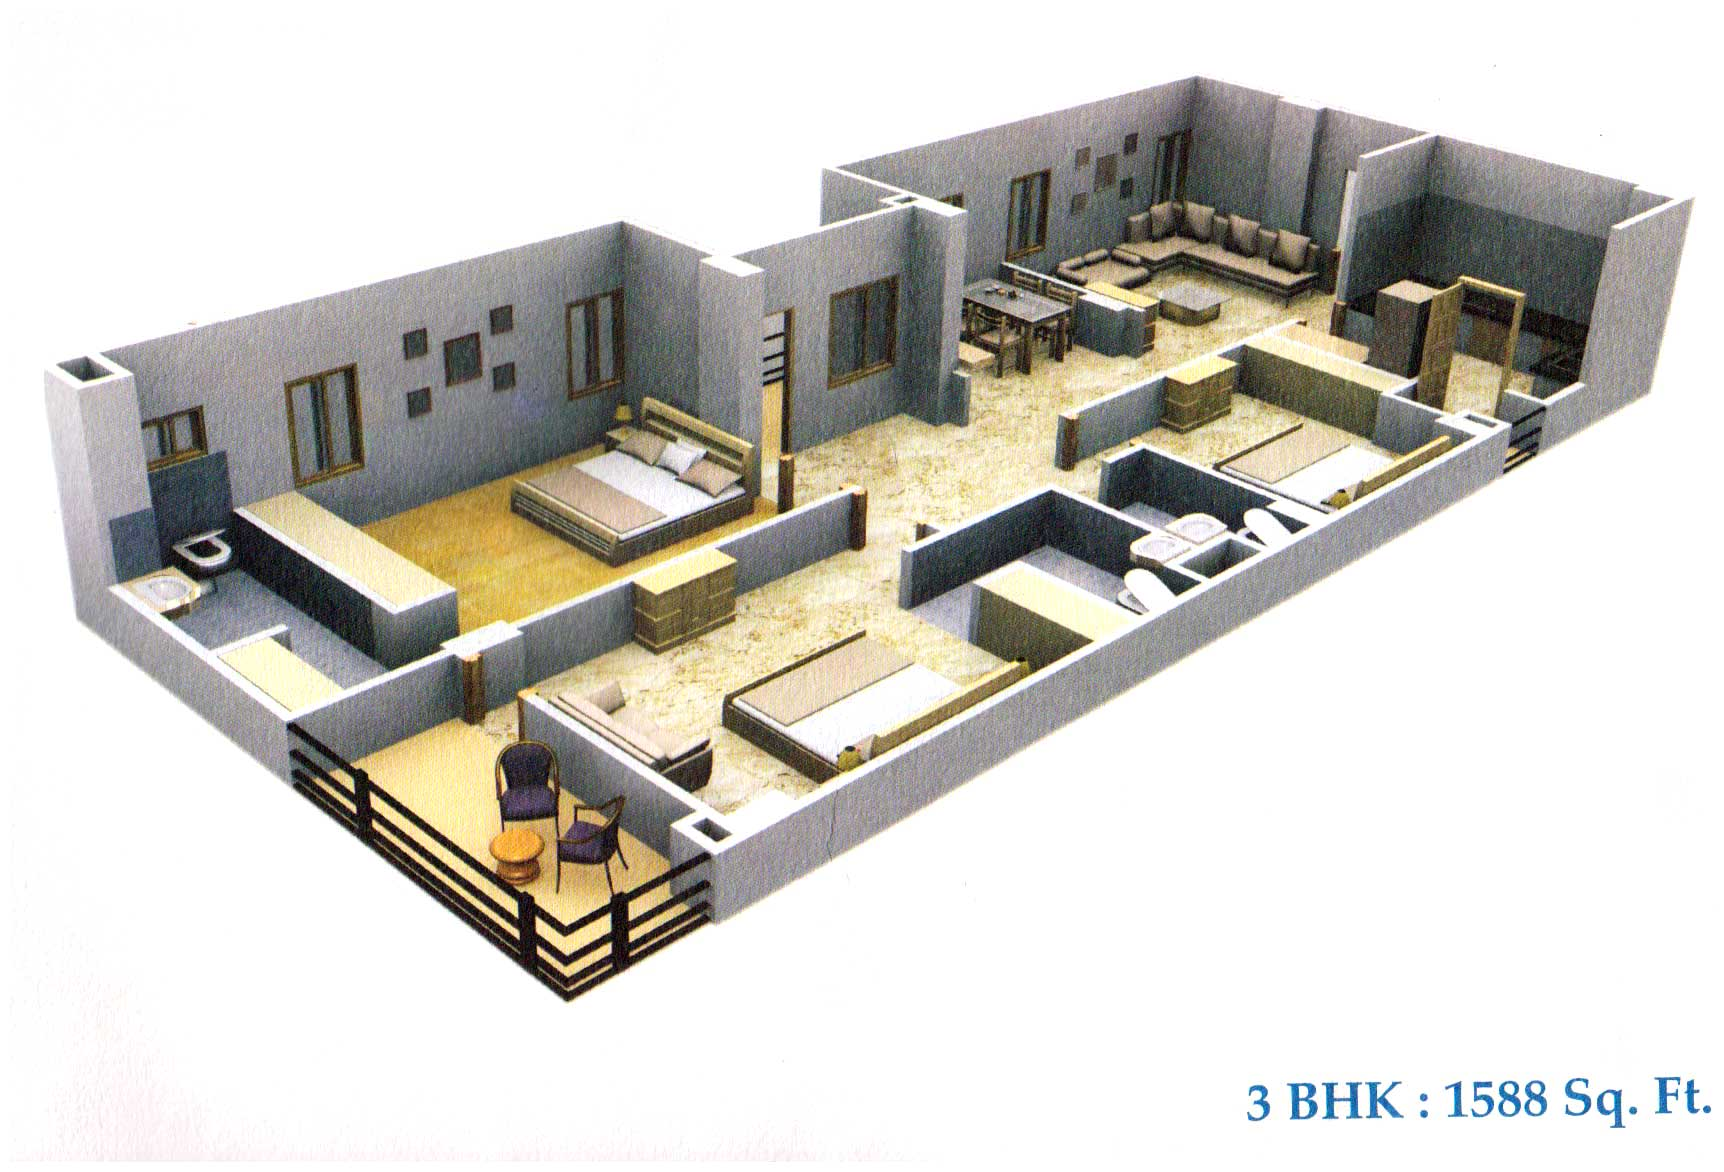 Prayas udaipur rajasthan india 2 3 bhk apartments in 3 bhk home design